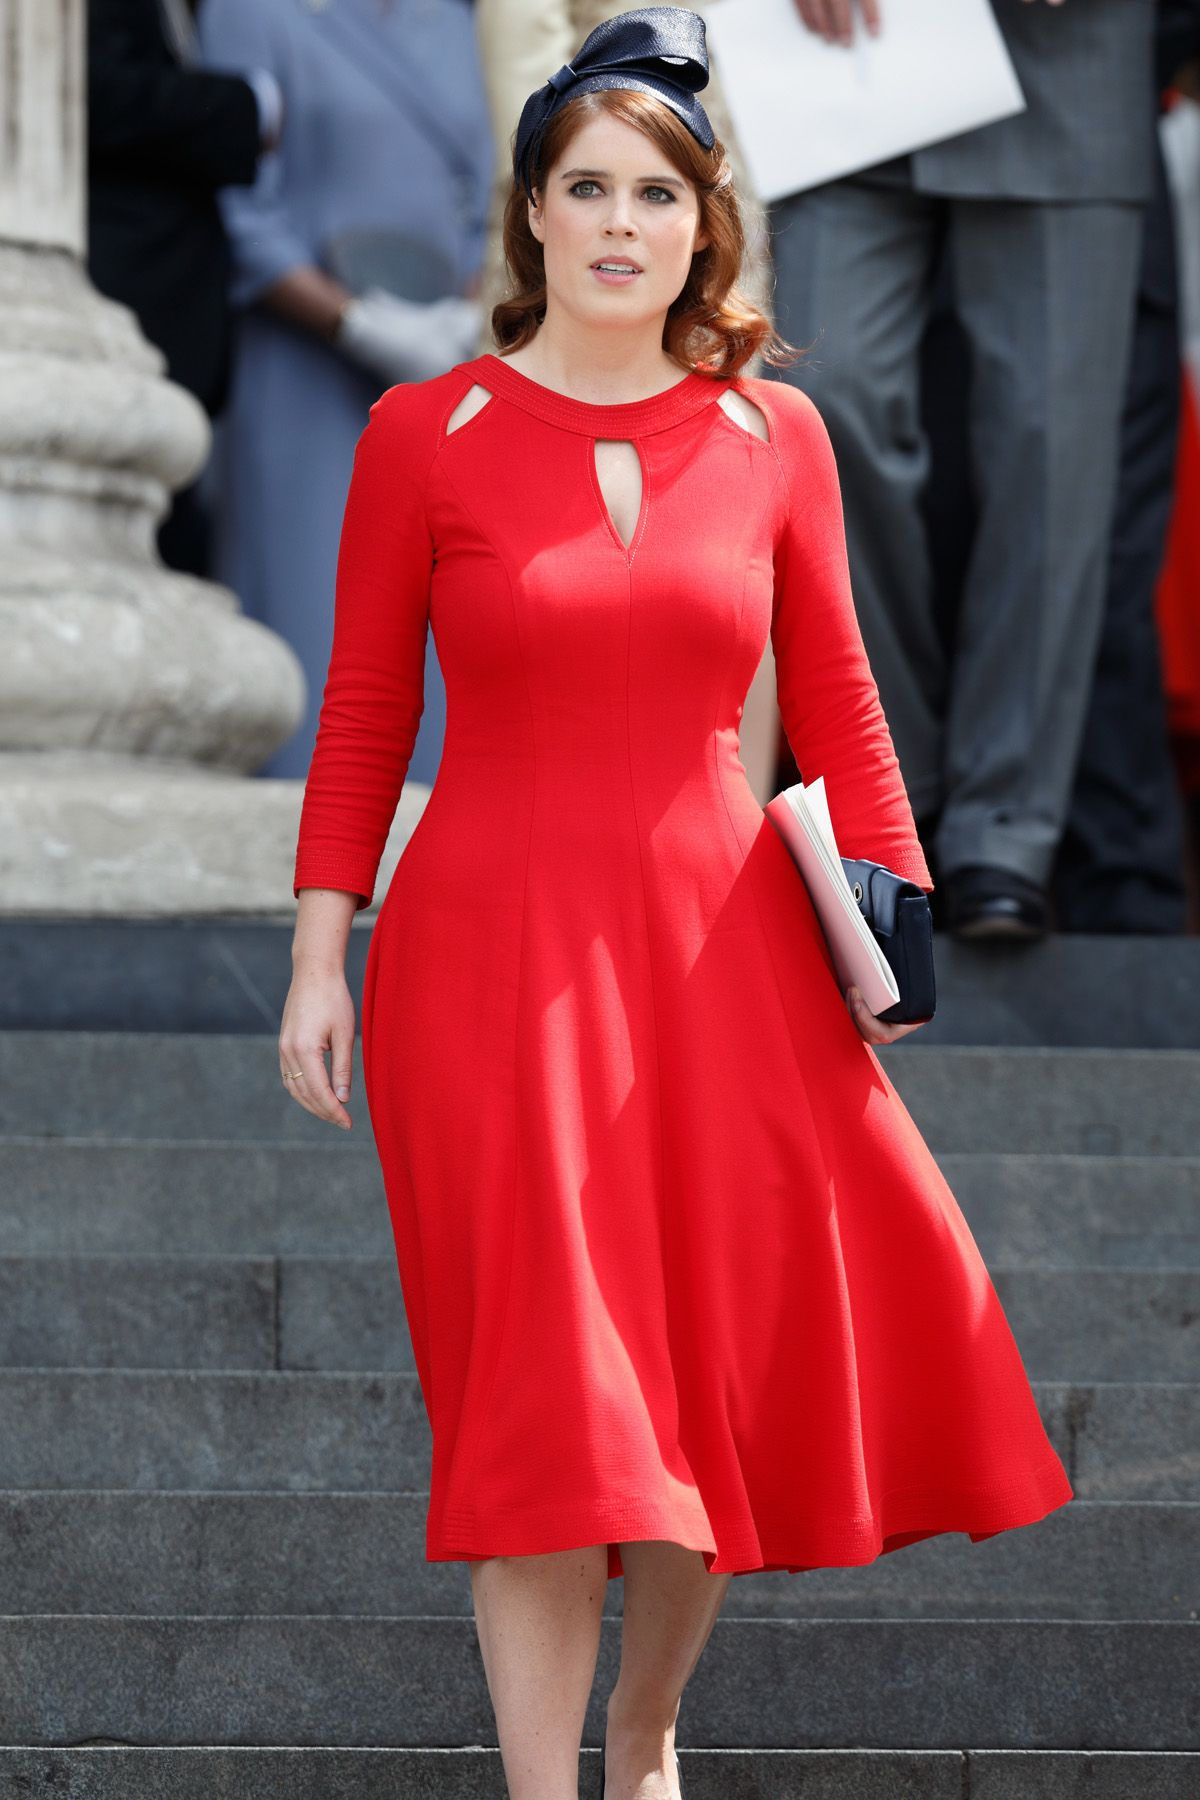 cba2371c8957 30 Times Princess Eugenie Broke Royal Protocol